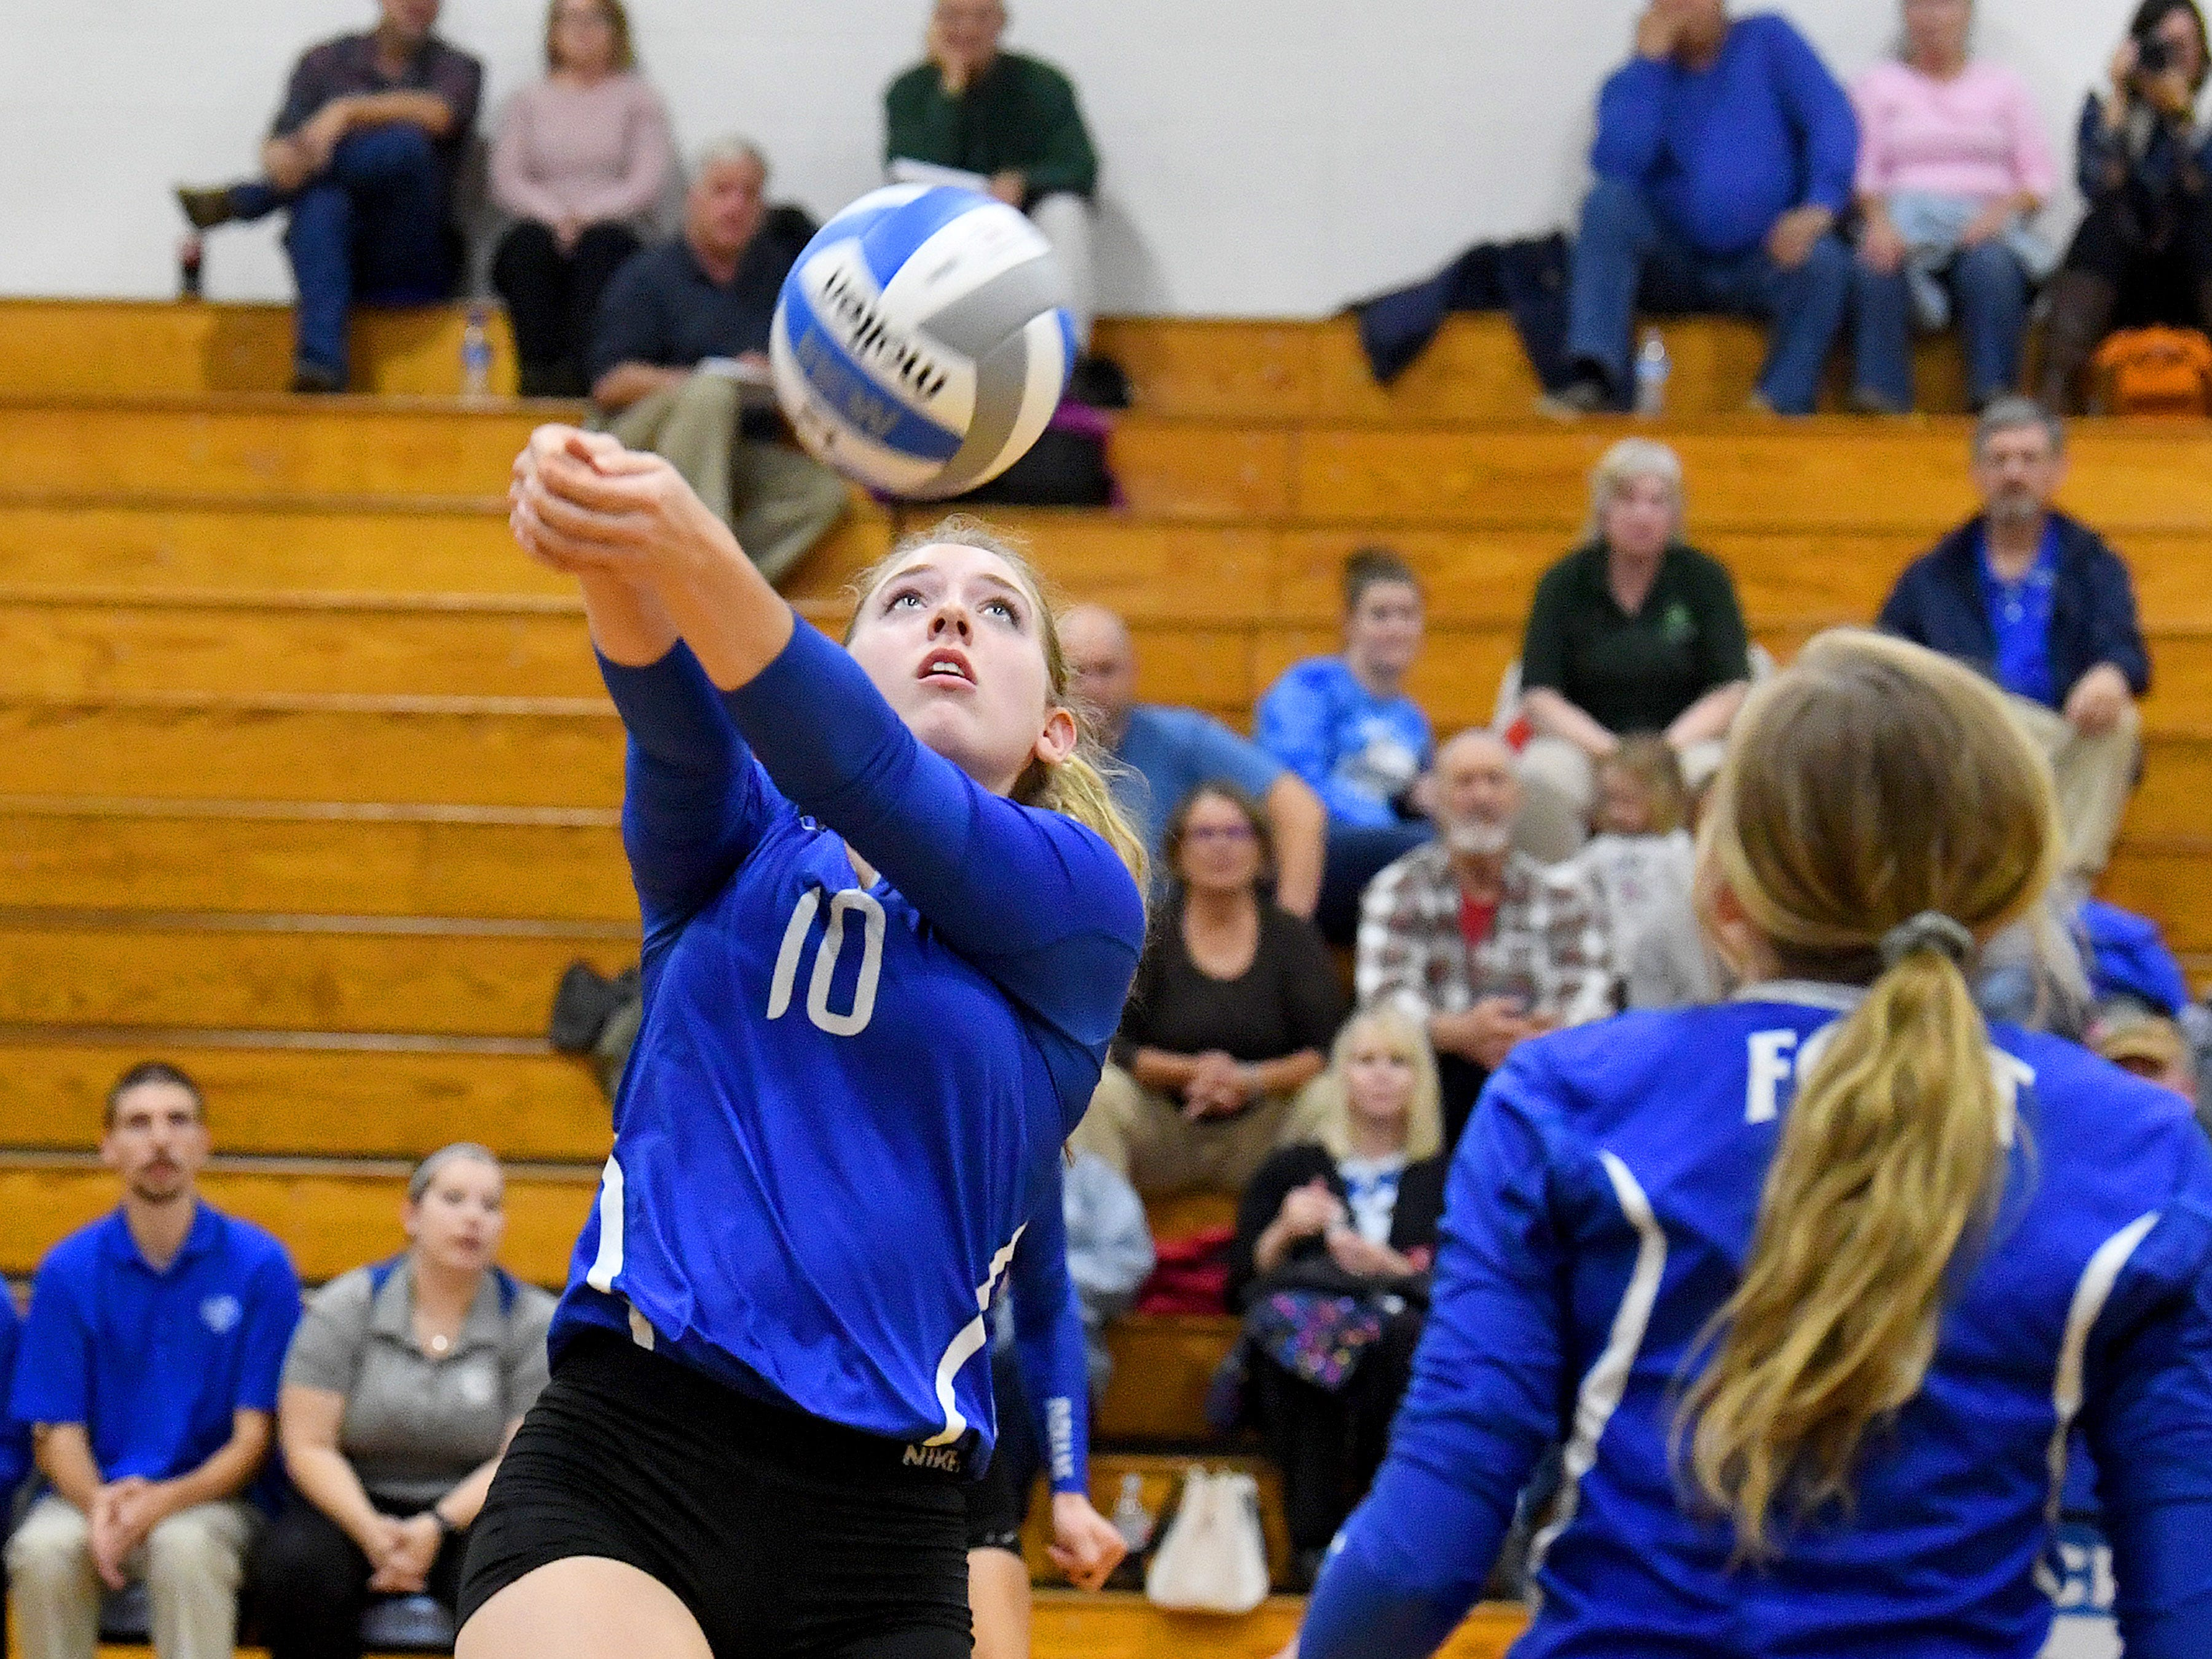 Fort Defiance's Catie Cramer bumps the ball during a Region 3C semifinal match played in Lexington on Monday, Nov. 5, 2018.